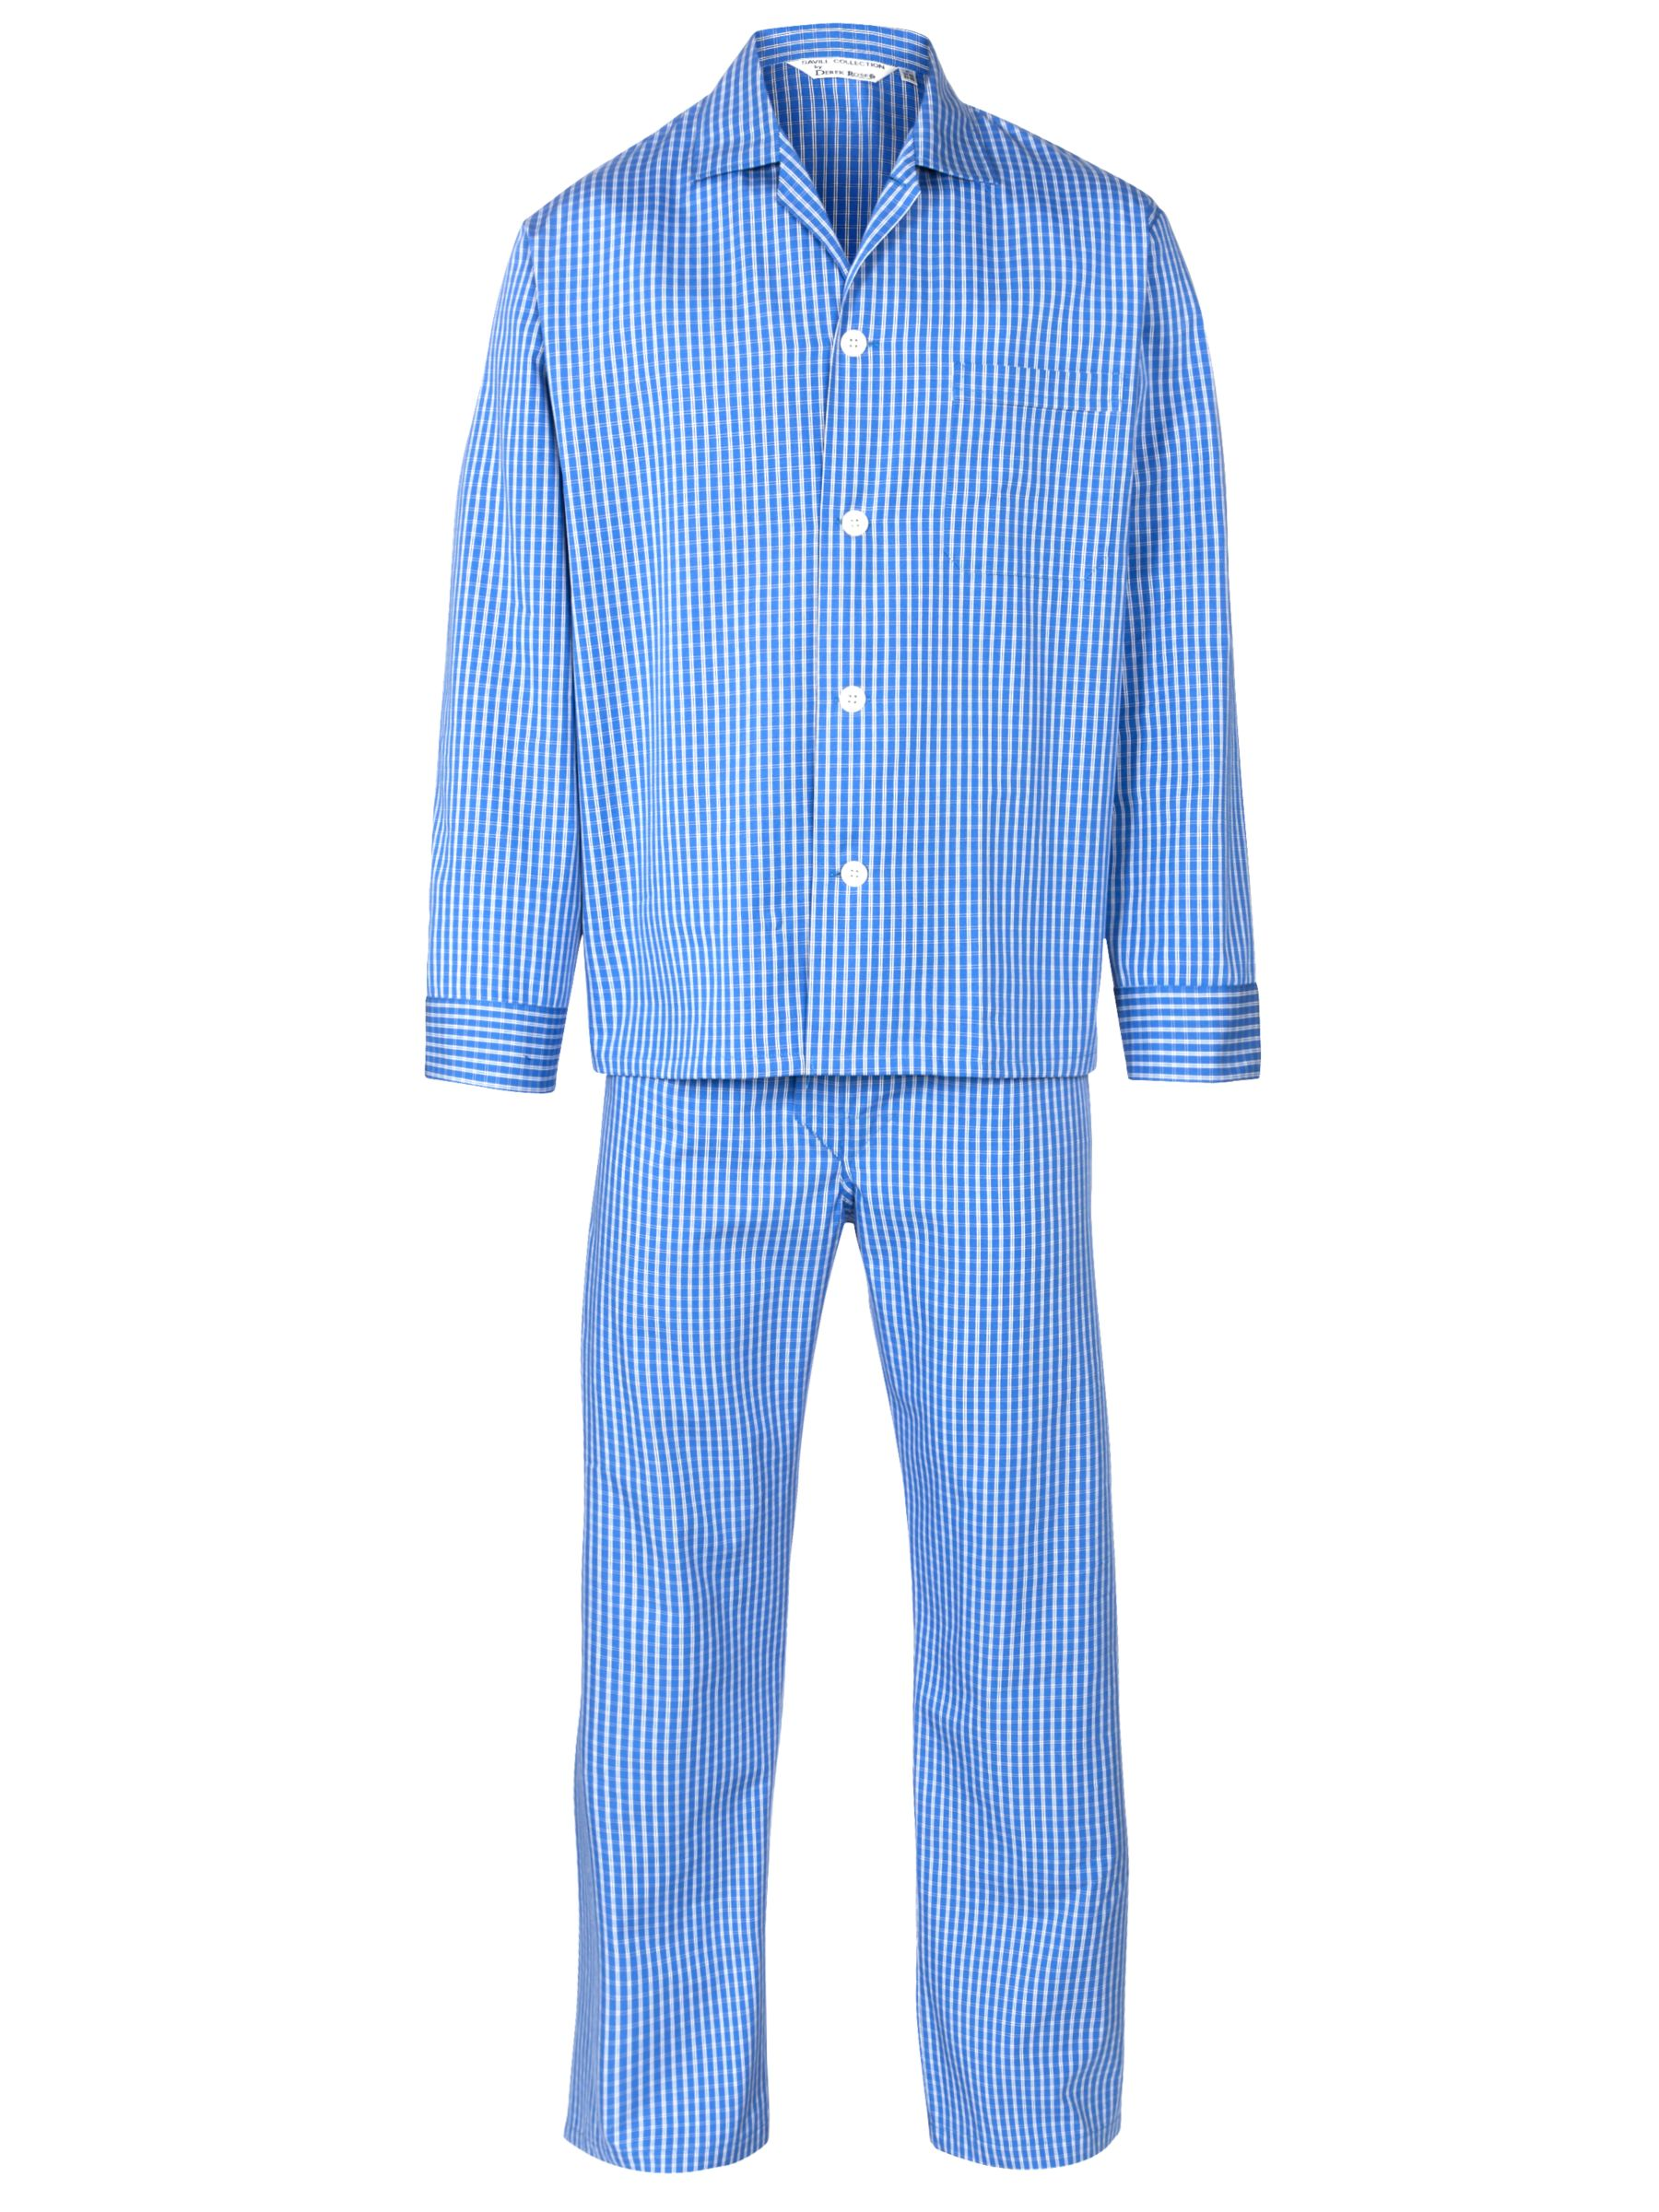 Derek Rose Check Woven Pyjamas, Blue